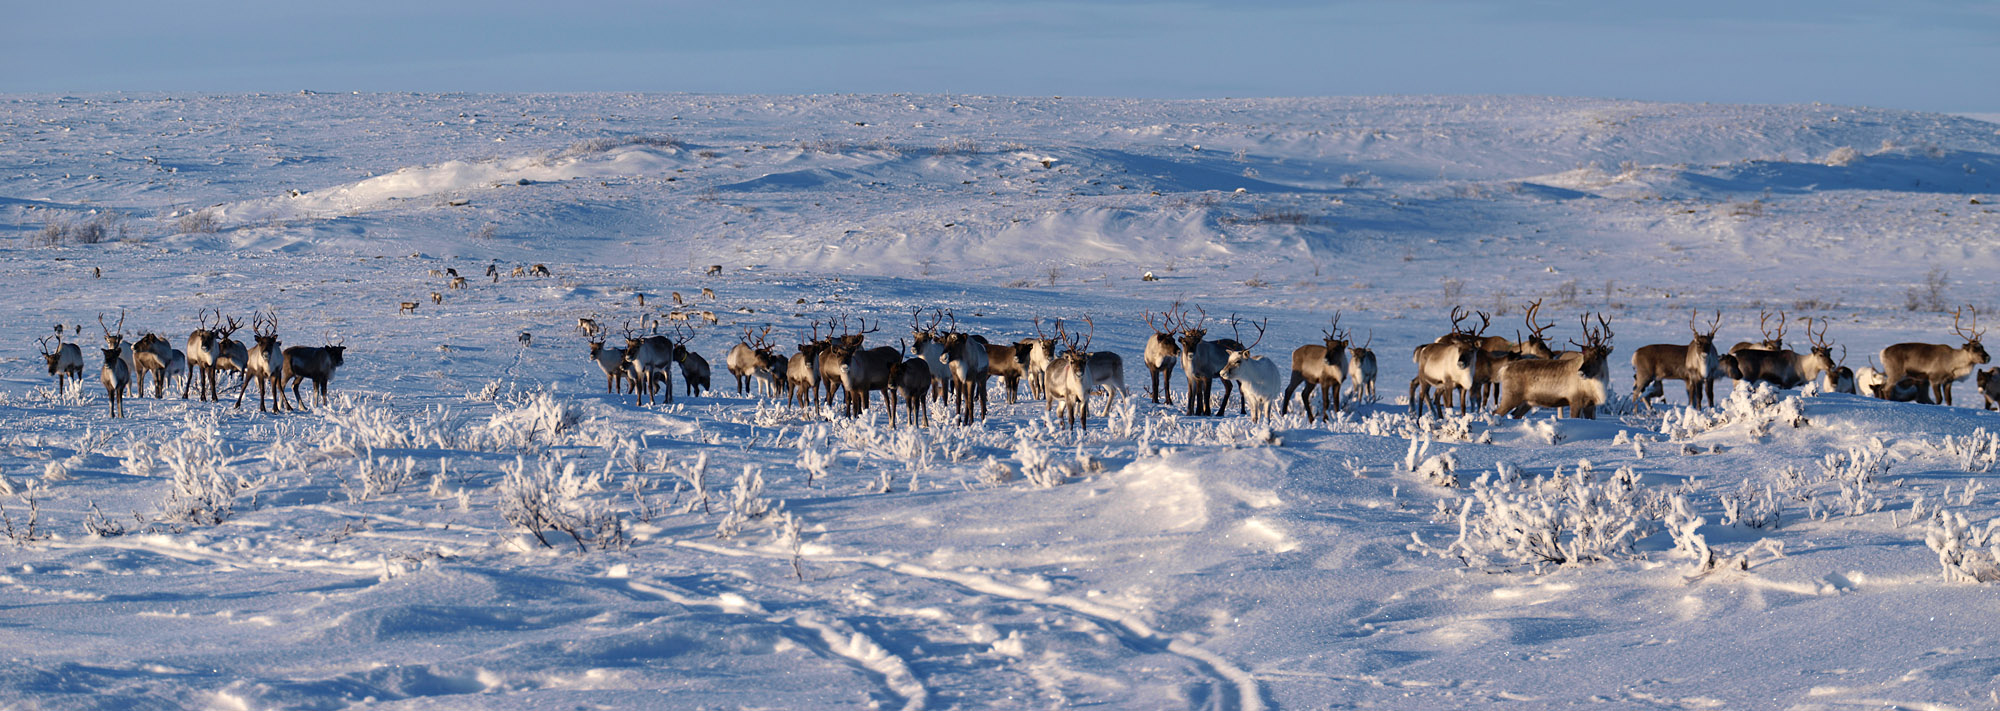 Wild reindeer wandering on the plateau. It was a wonderful sight to see.